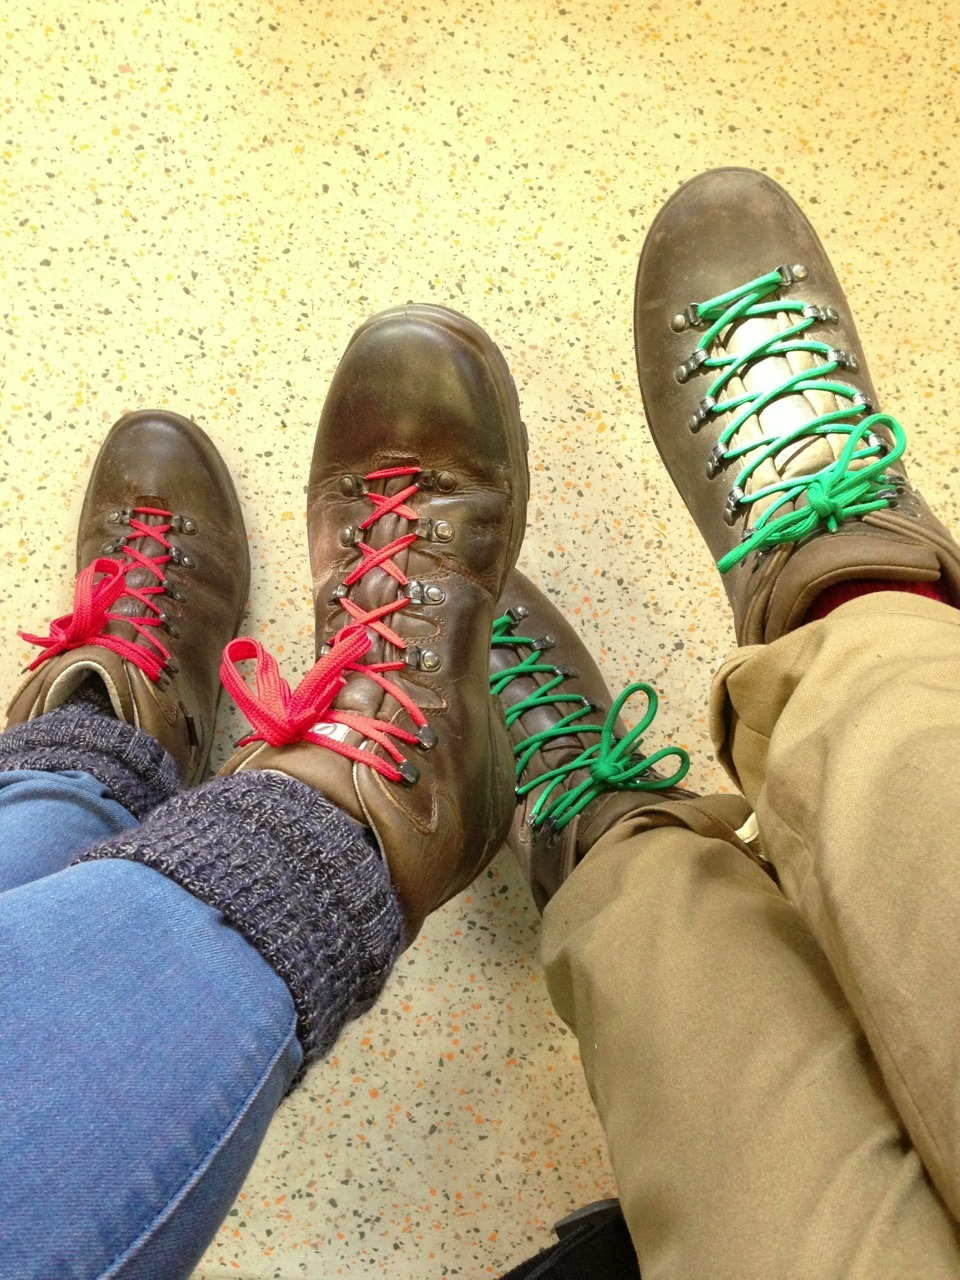 We're wearing his and hers hiking boots. Is that tragic, or sweet?